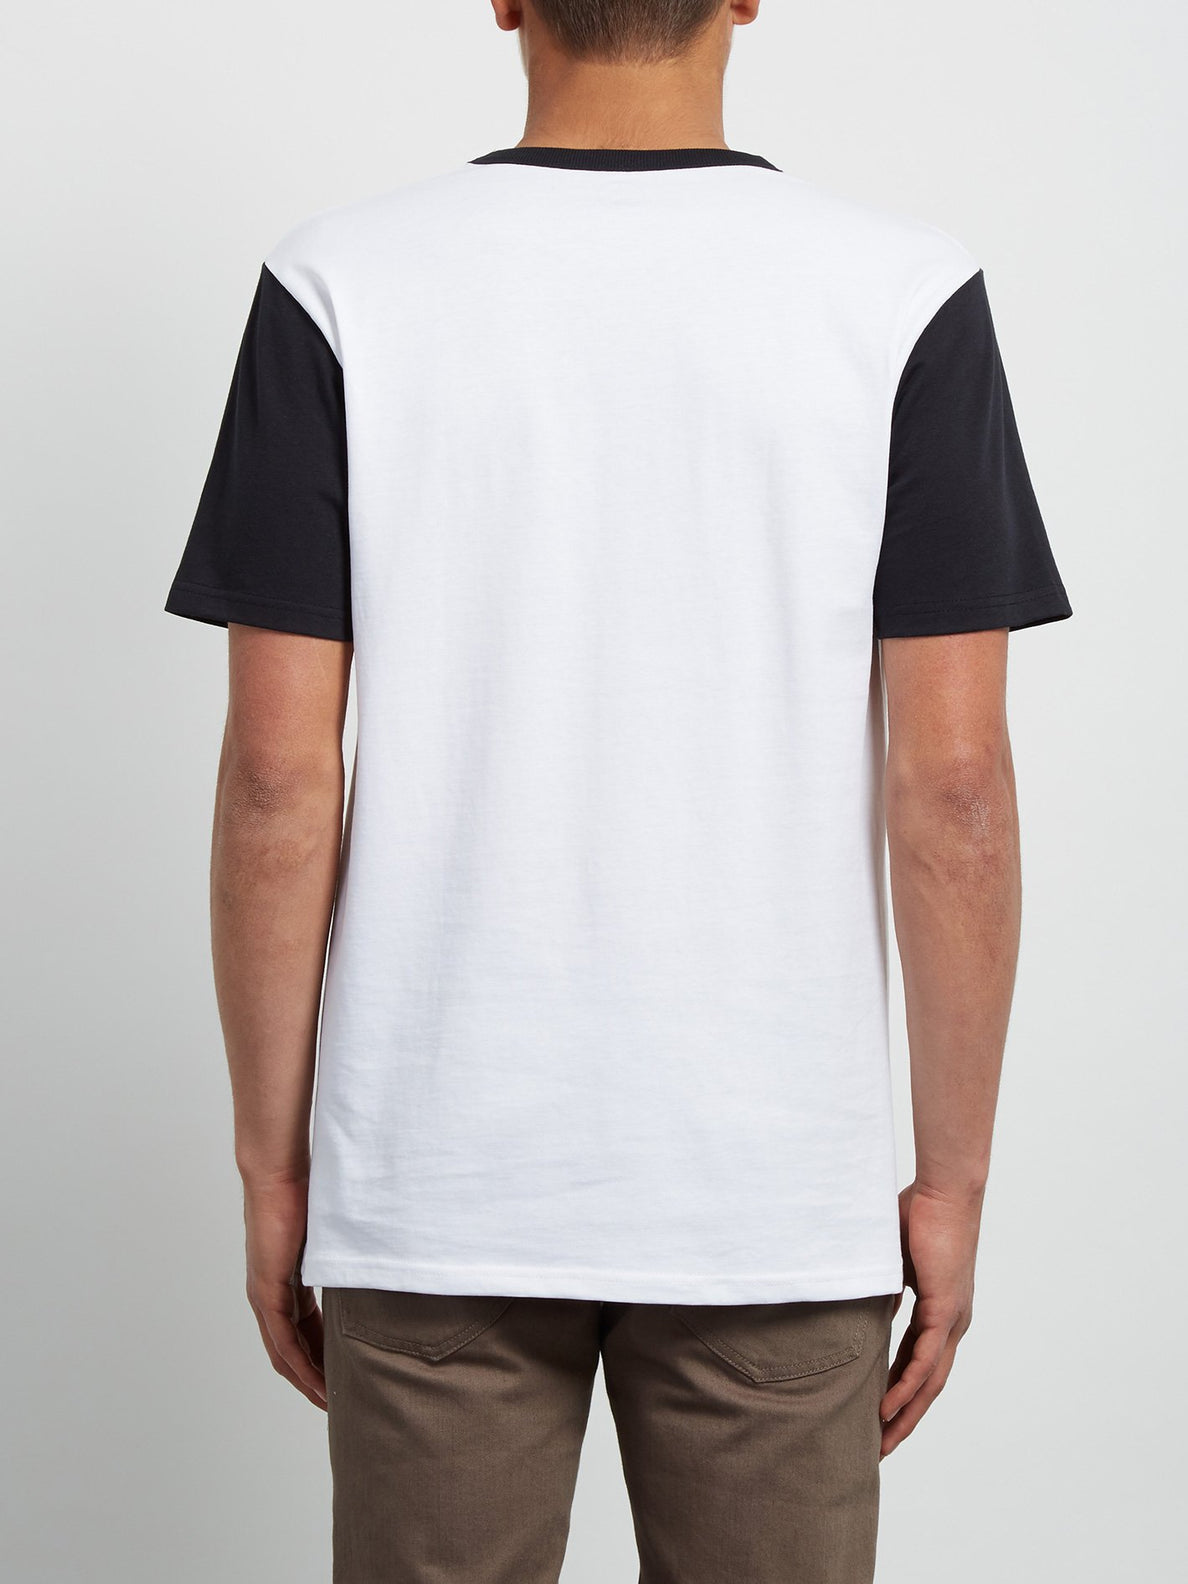 Angular Tee - Black